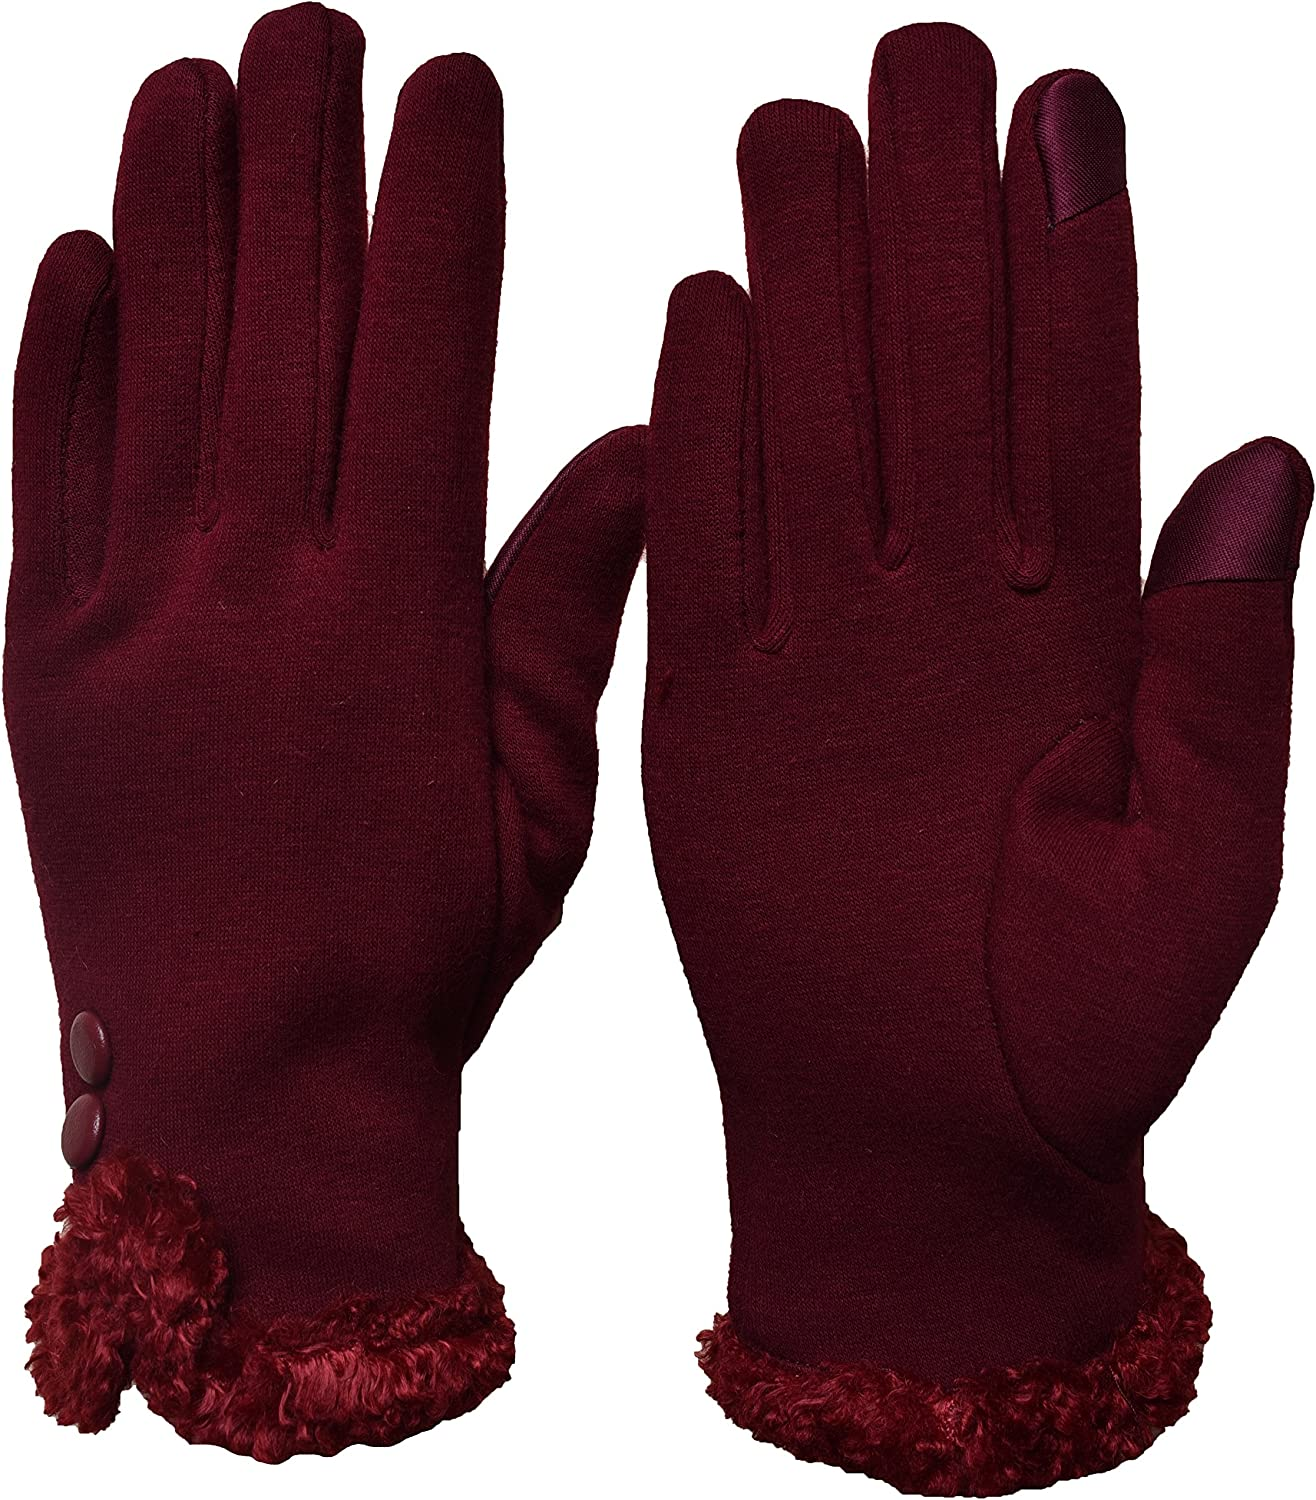 Woogwin Womens Touch Screen Gloves Texting Winter Warm Fleece Lined Ladies Gloves